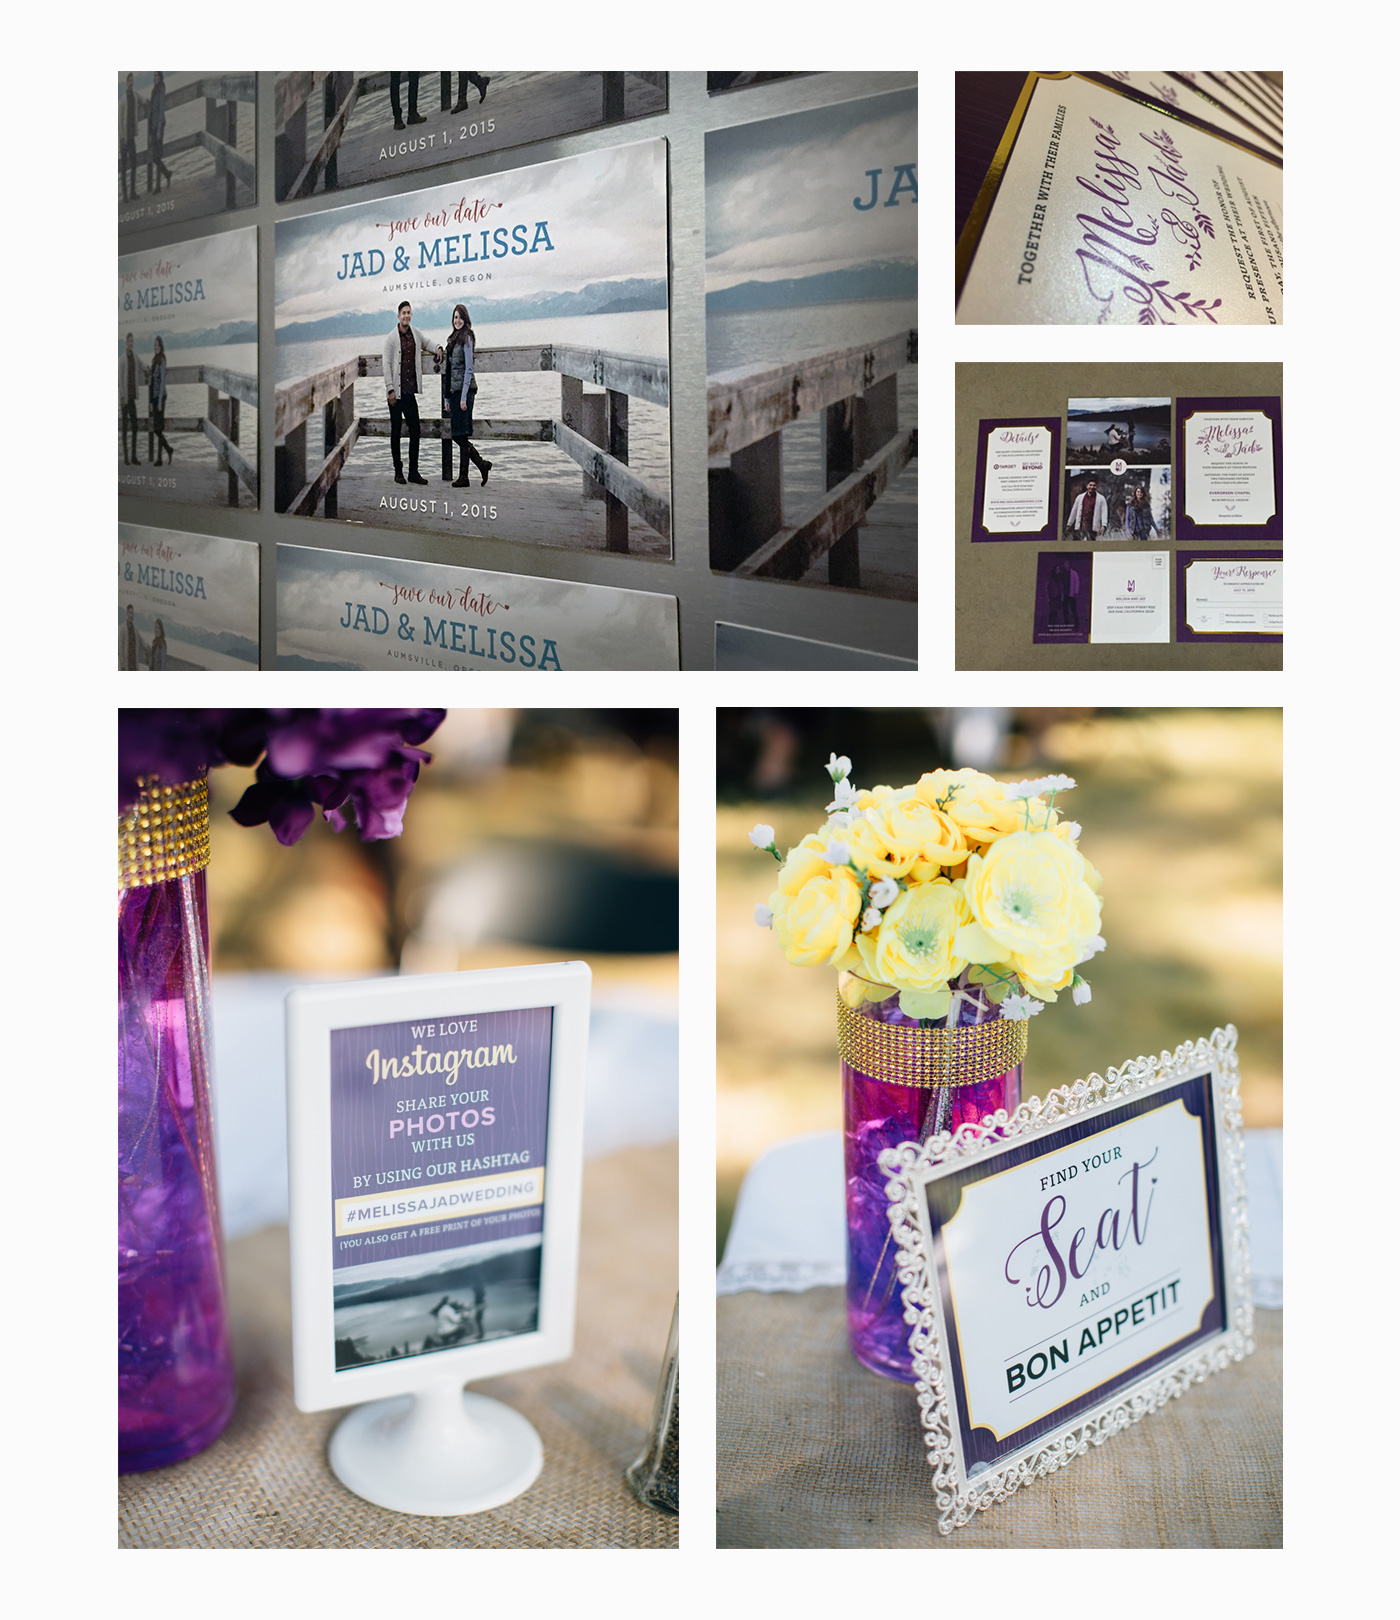 Wedding Printed Materials